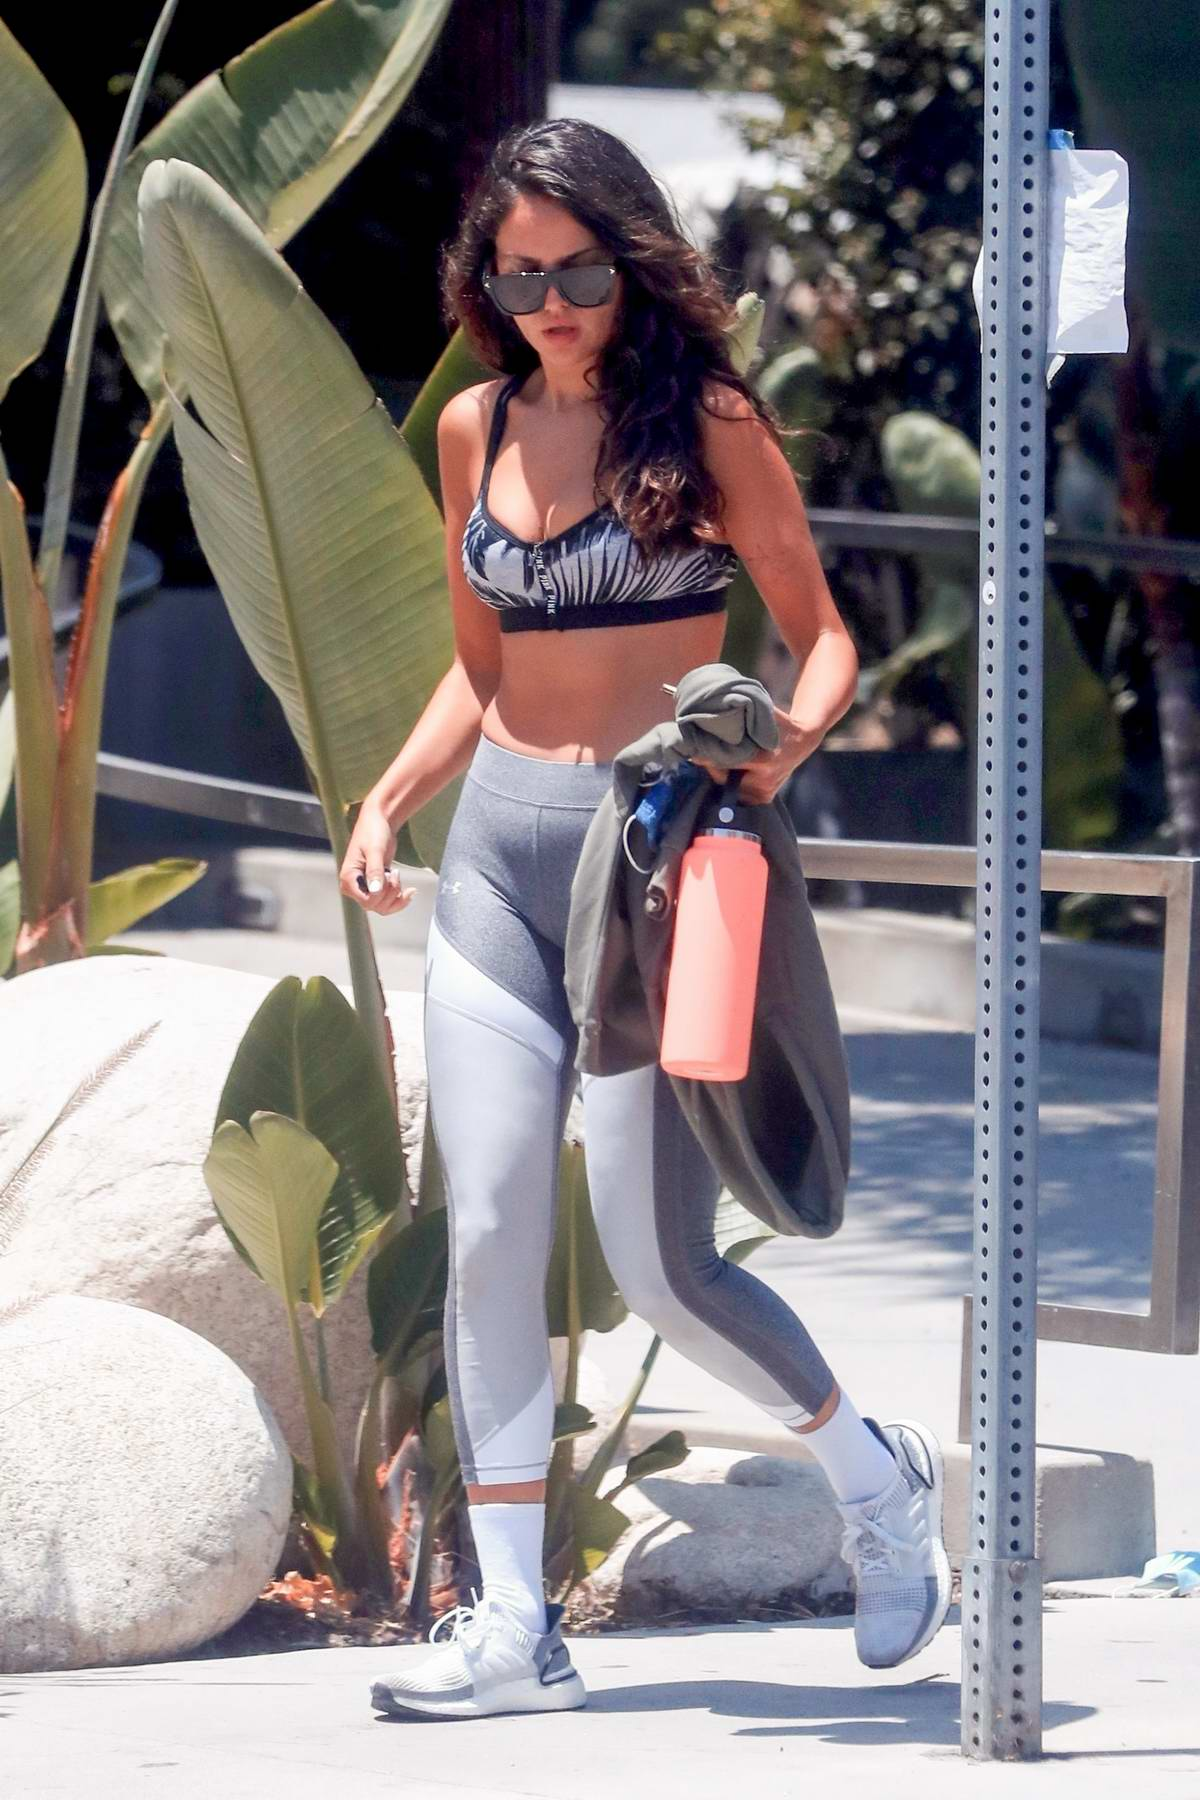 Eiza Gonzalez shows off toned figure in a sports bra and leggings after a workout session in Los Feliz, California